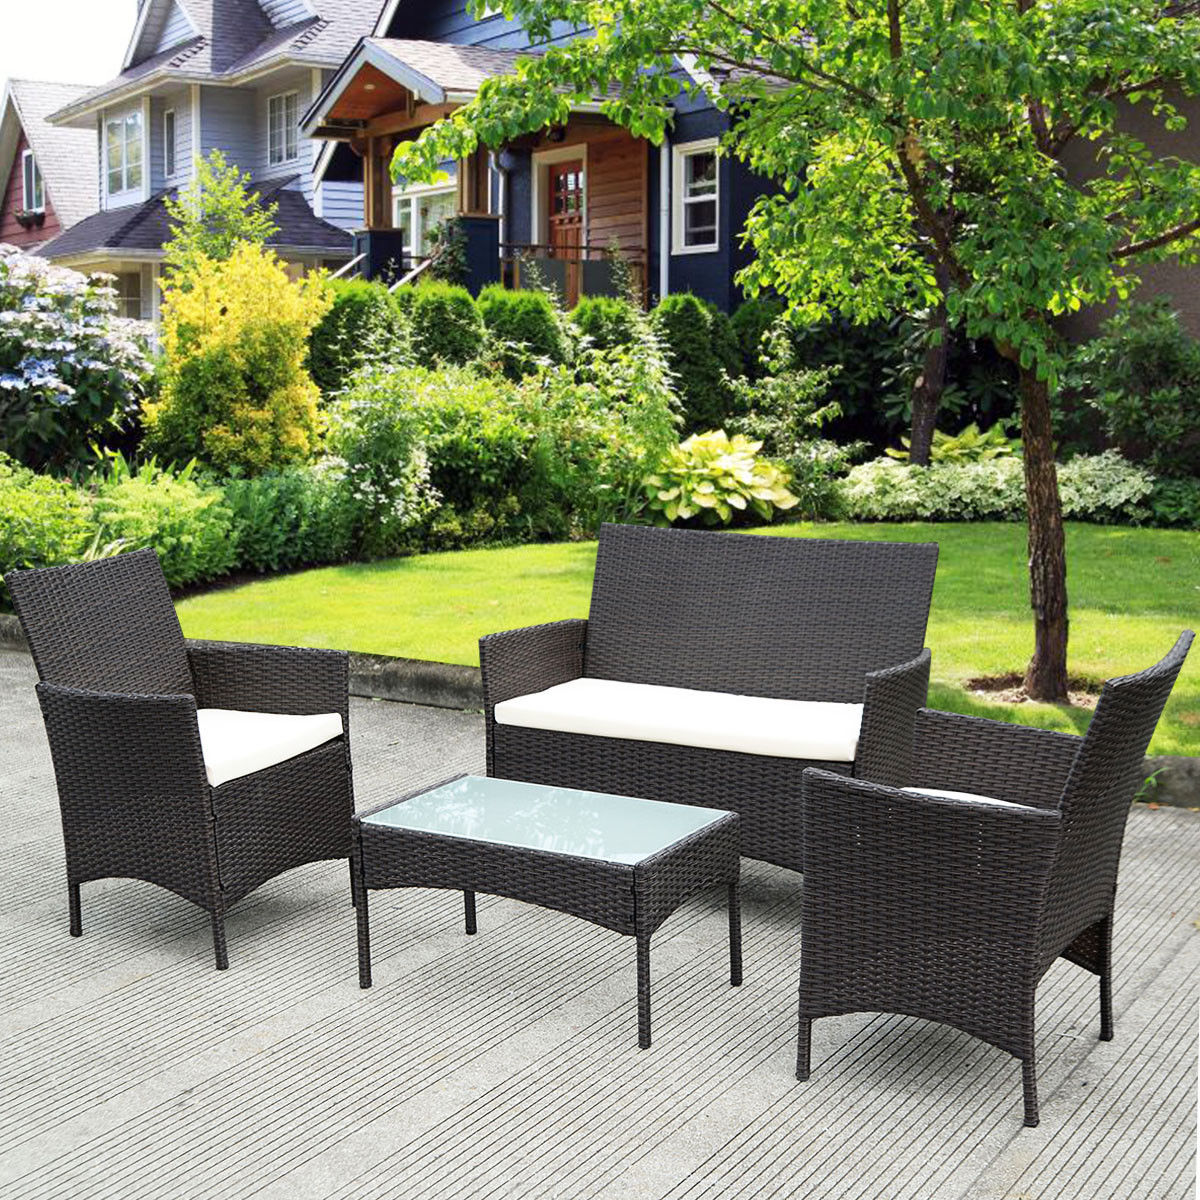 Rattan set  Costway 4 PC Patio Rattan Wicker Chair Sofa Table Set Outdoor ...